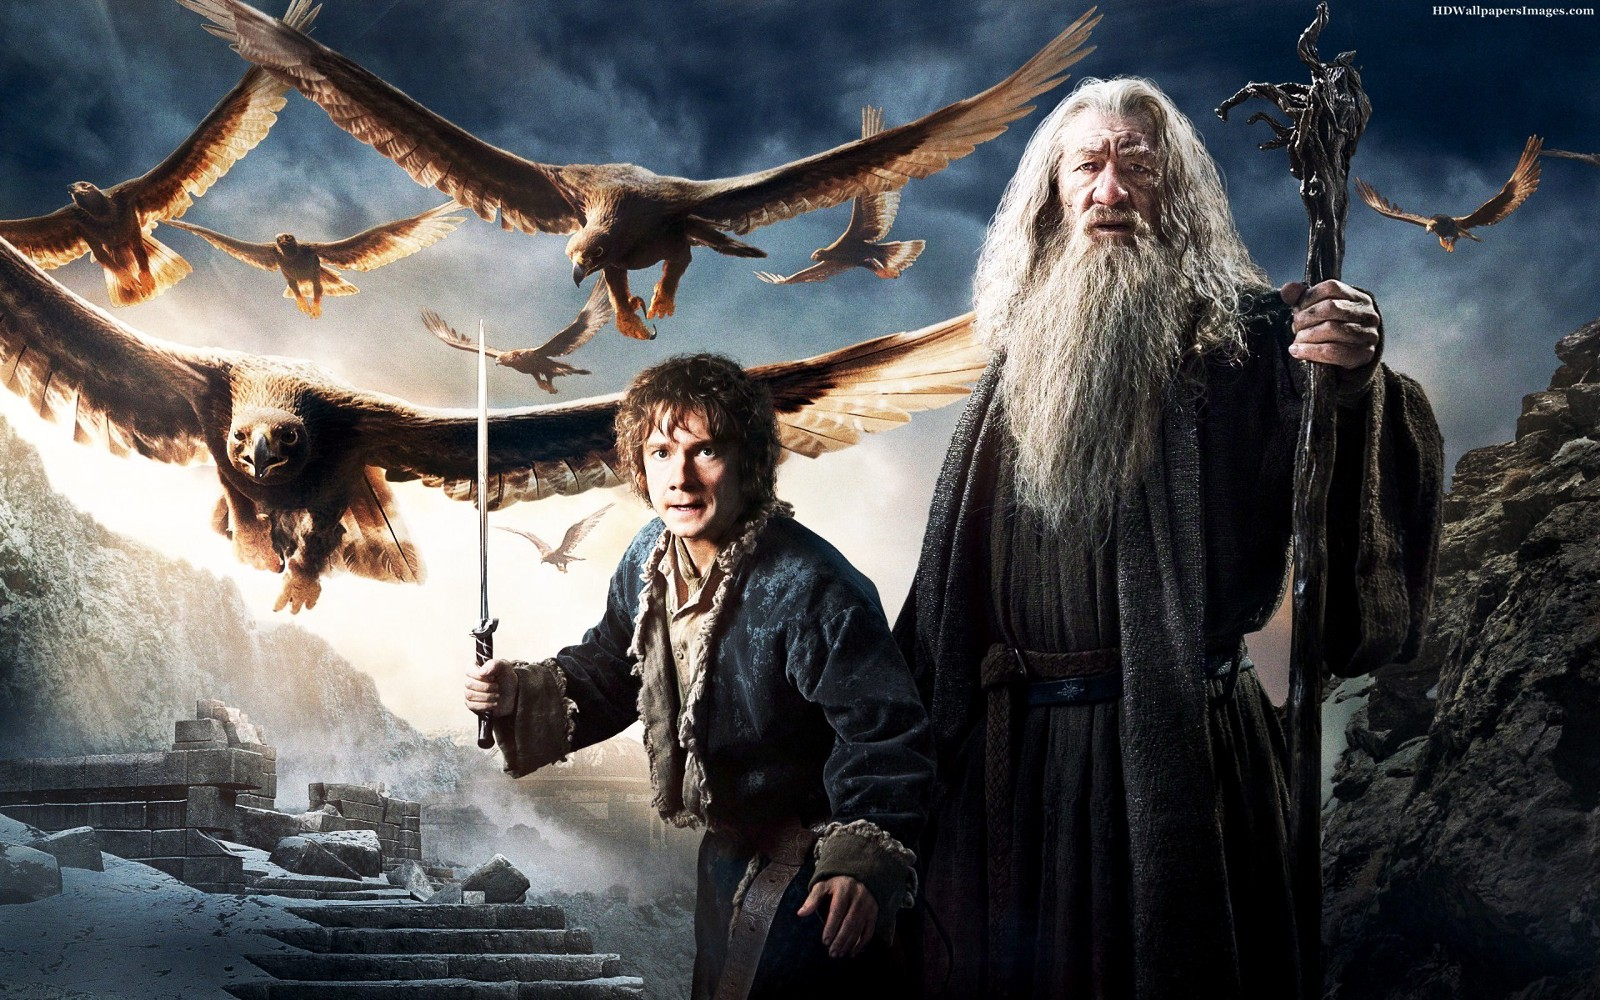 an analysis of the character of bilbo in the hobbit The hobbit: character analysis of bilbo topics: the hobbit, the lord of the rings, bilbo baggins pages: 3 (978 words) published: april 14, 2011 have you ever had to make a change in your life and been scared about what might happen i have gone through such a change in mine and so has a character called bilbo in the hobbit by jrr tolkien.